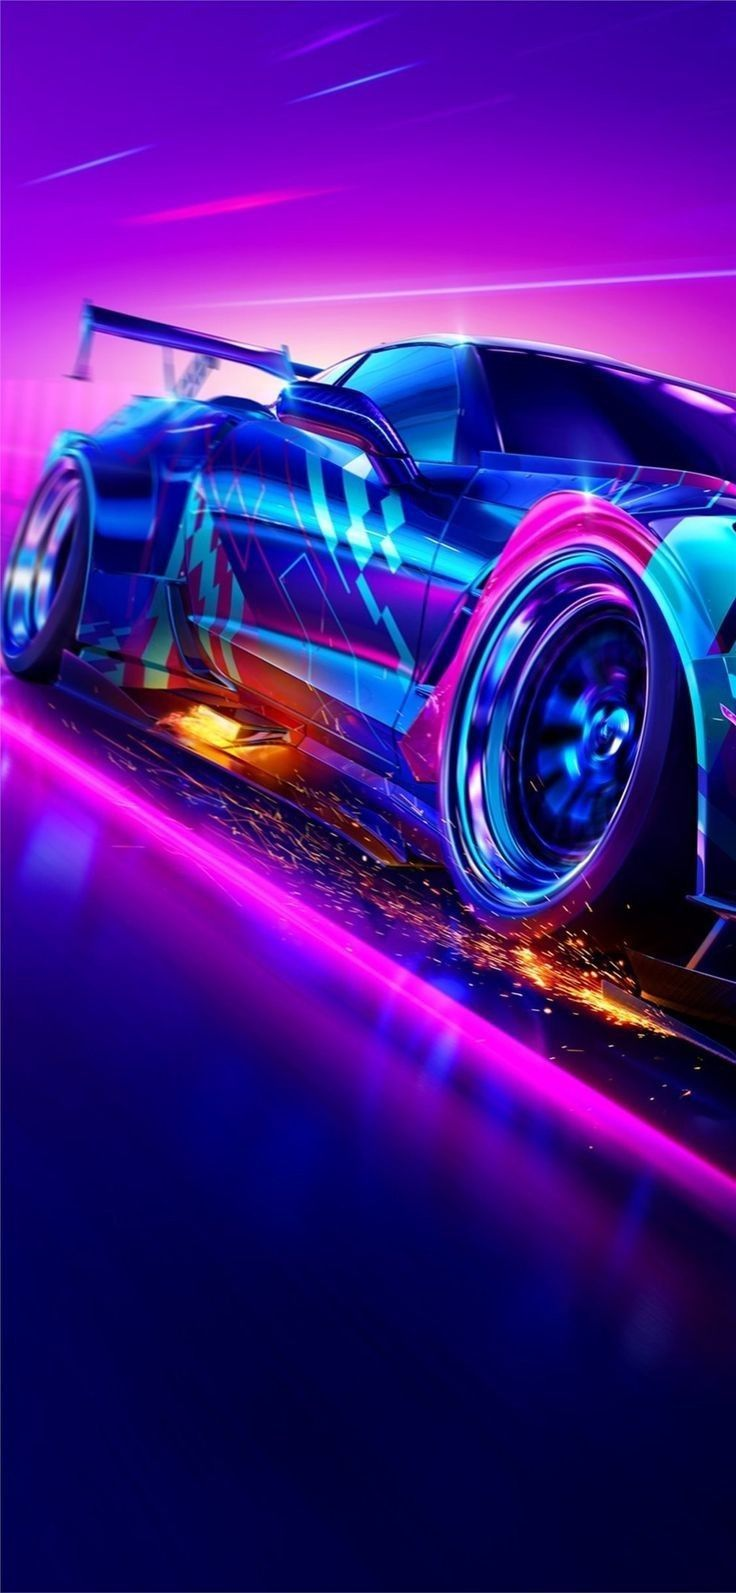 Super Carz In 2020 Need For Speed Cars Car Wallpapers Car Iphone Wallpaper